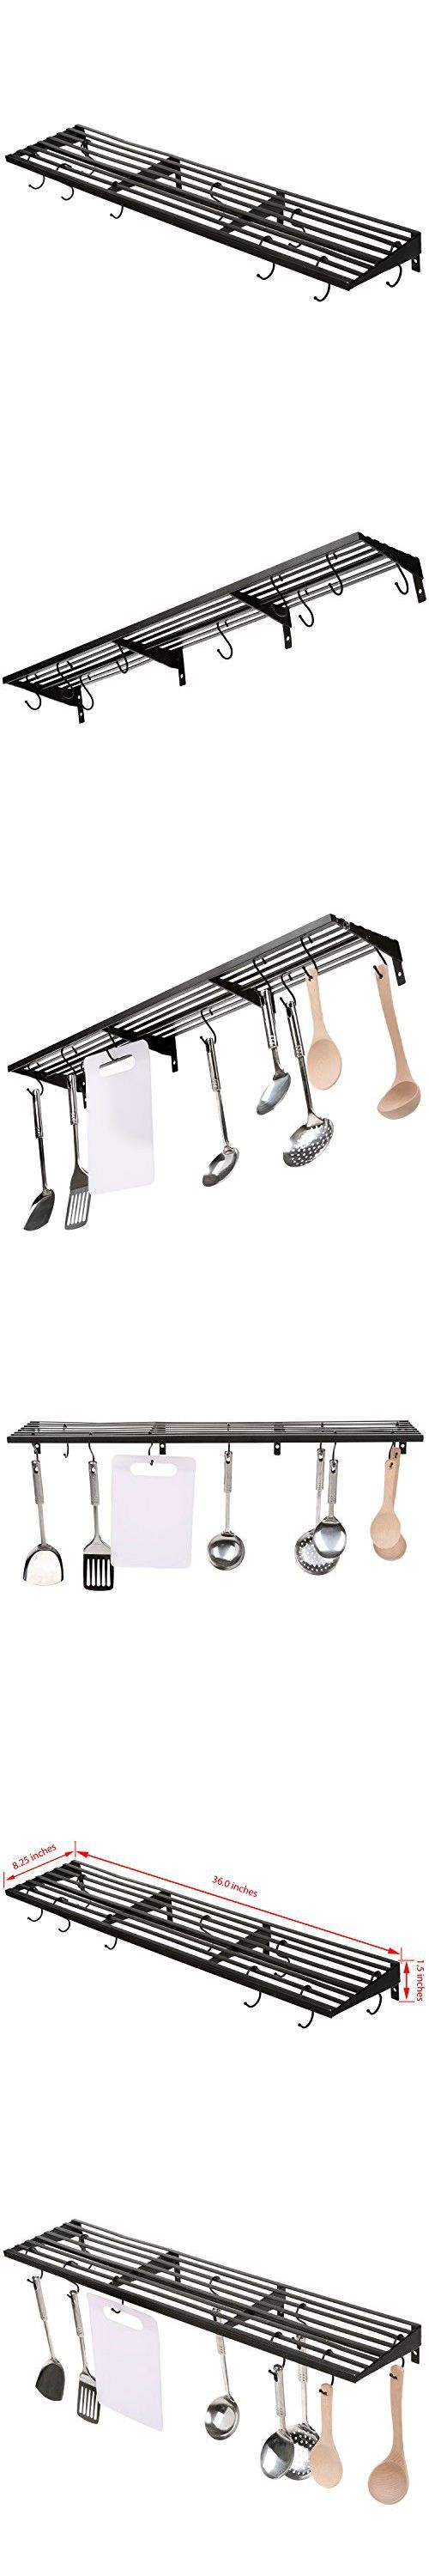 MyGift Wall Mount Pot Rack, Kitchen Storage Shelf w/ Pan & Utensil Hooks, Black